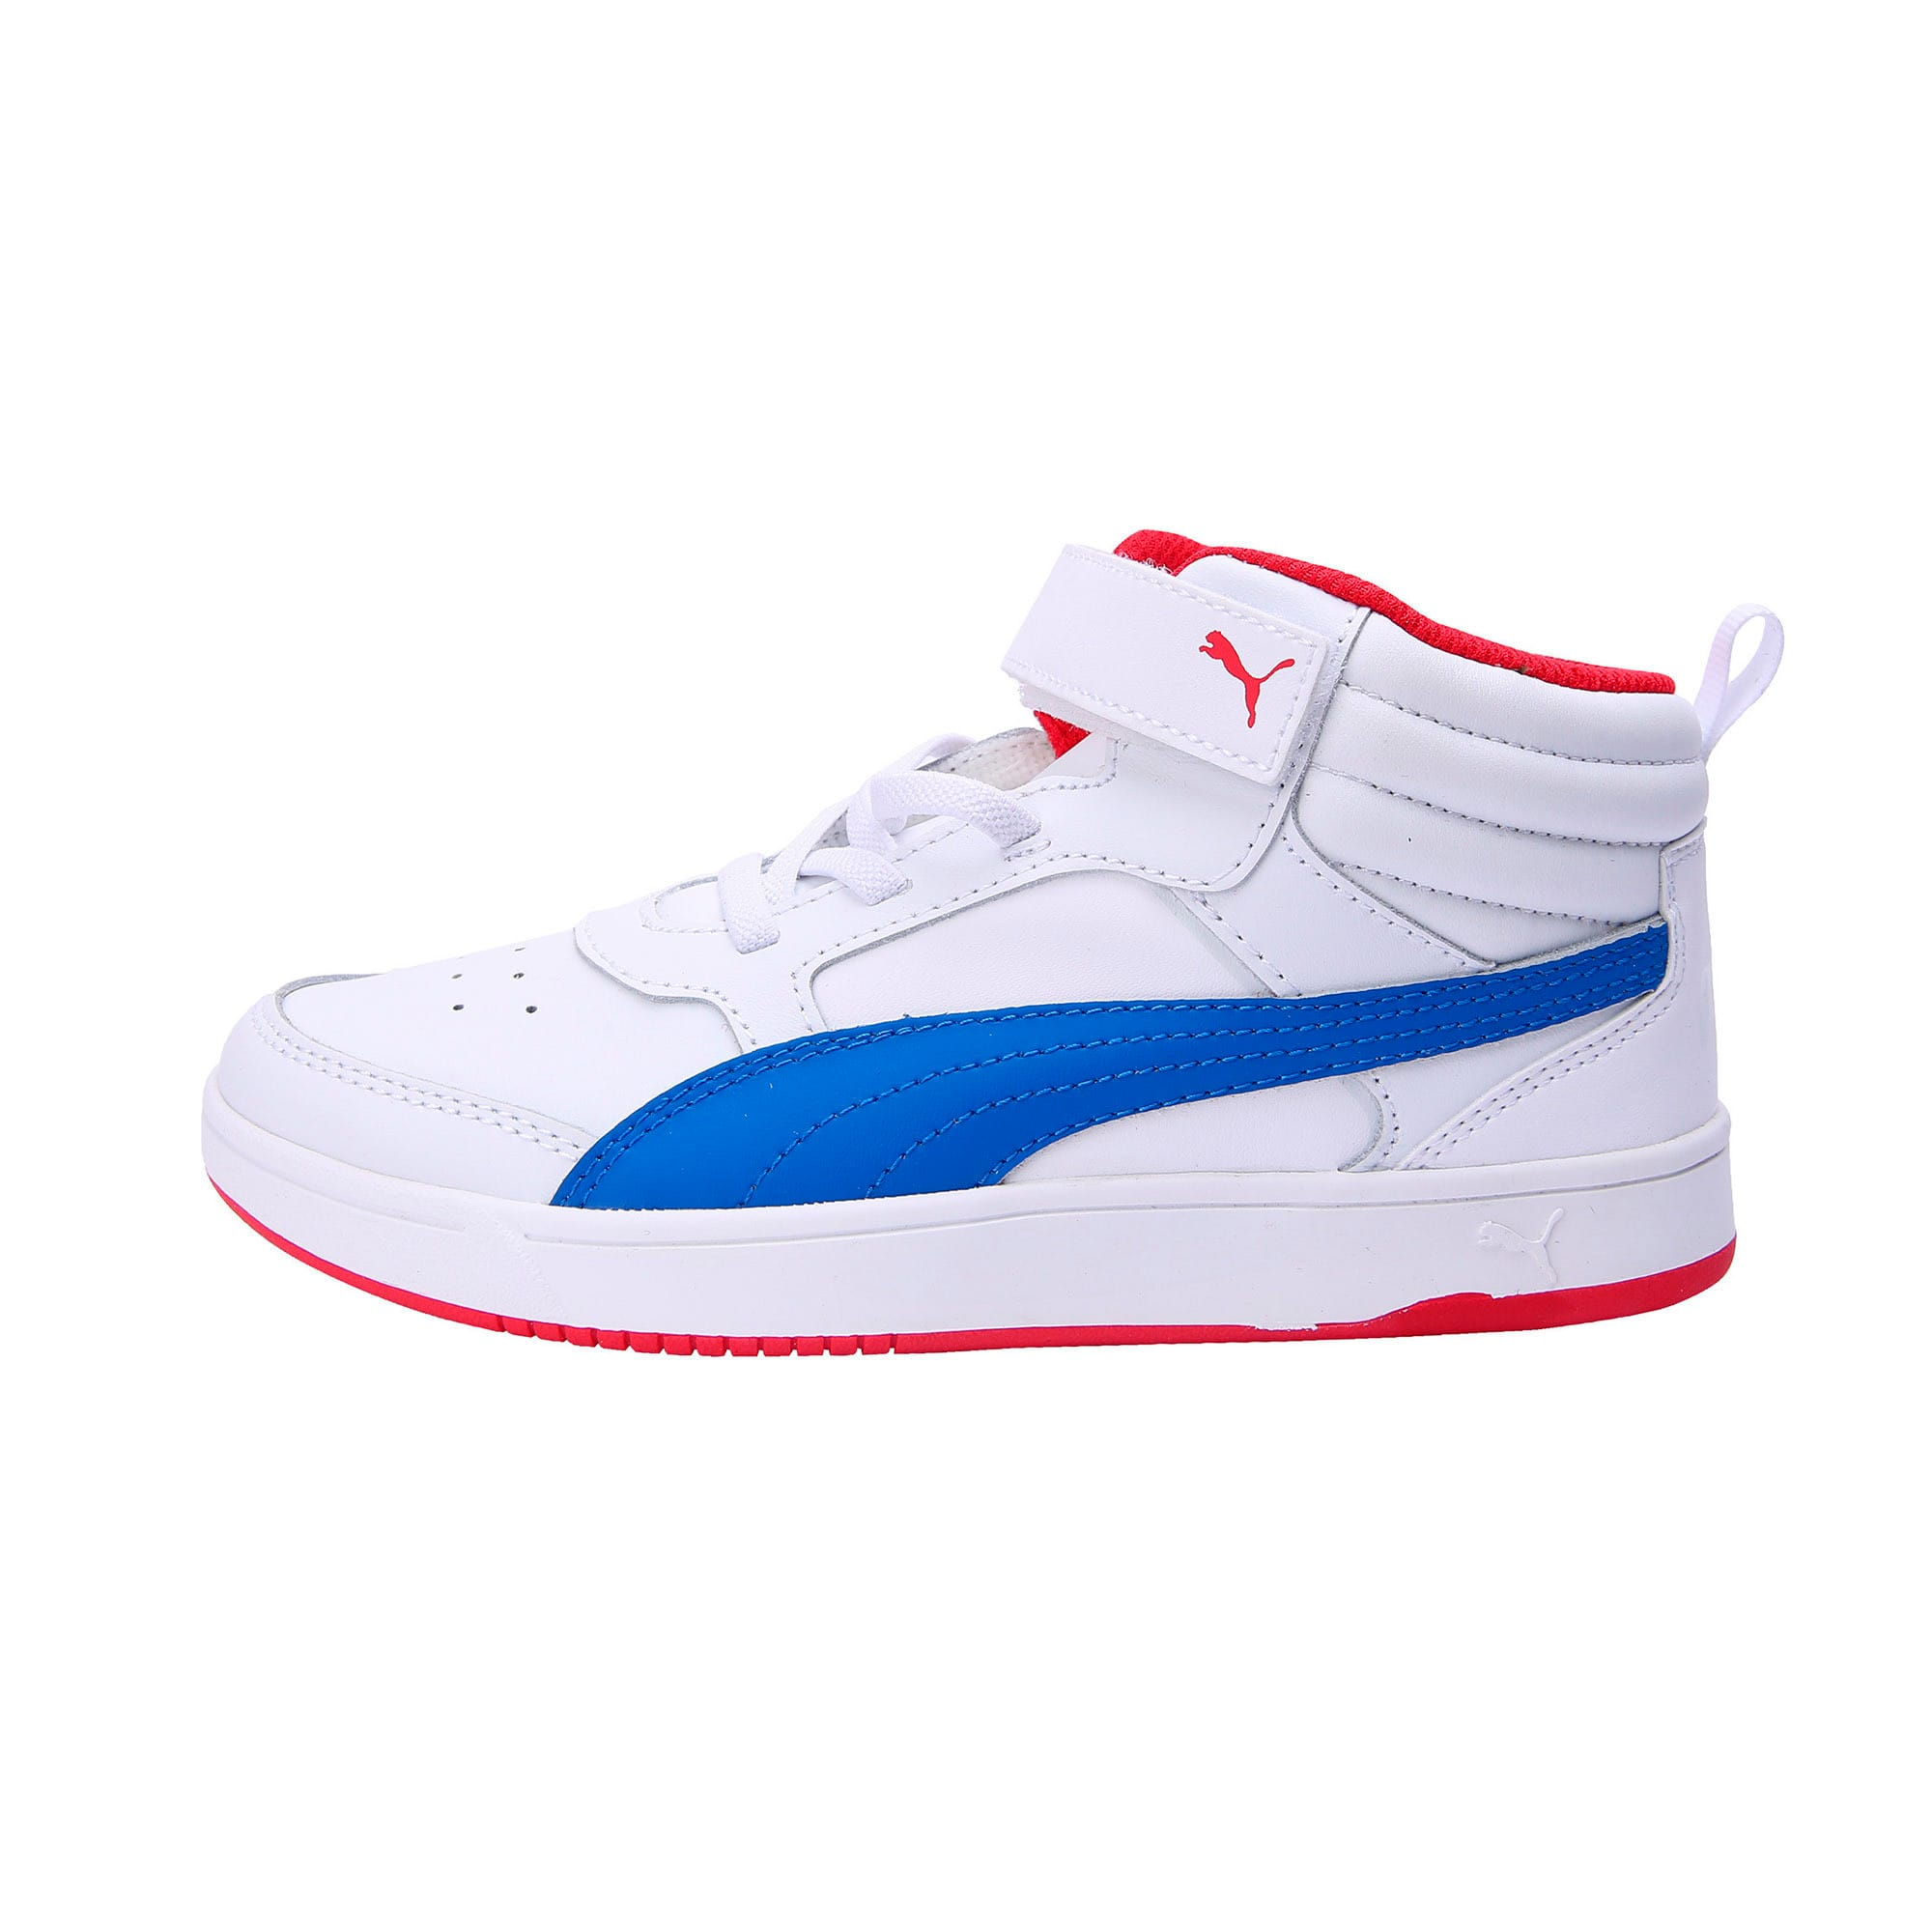 Thumbnail 1 of PumaReboundStreet2 L V PS, White-Strng Blue-Rbbn Red, medium-IND